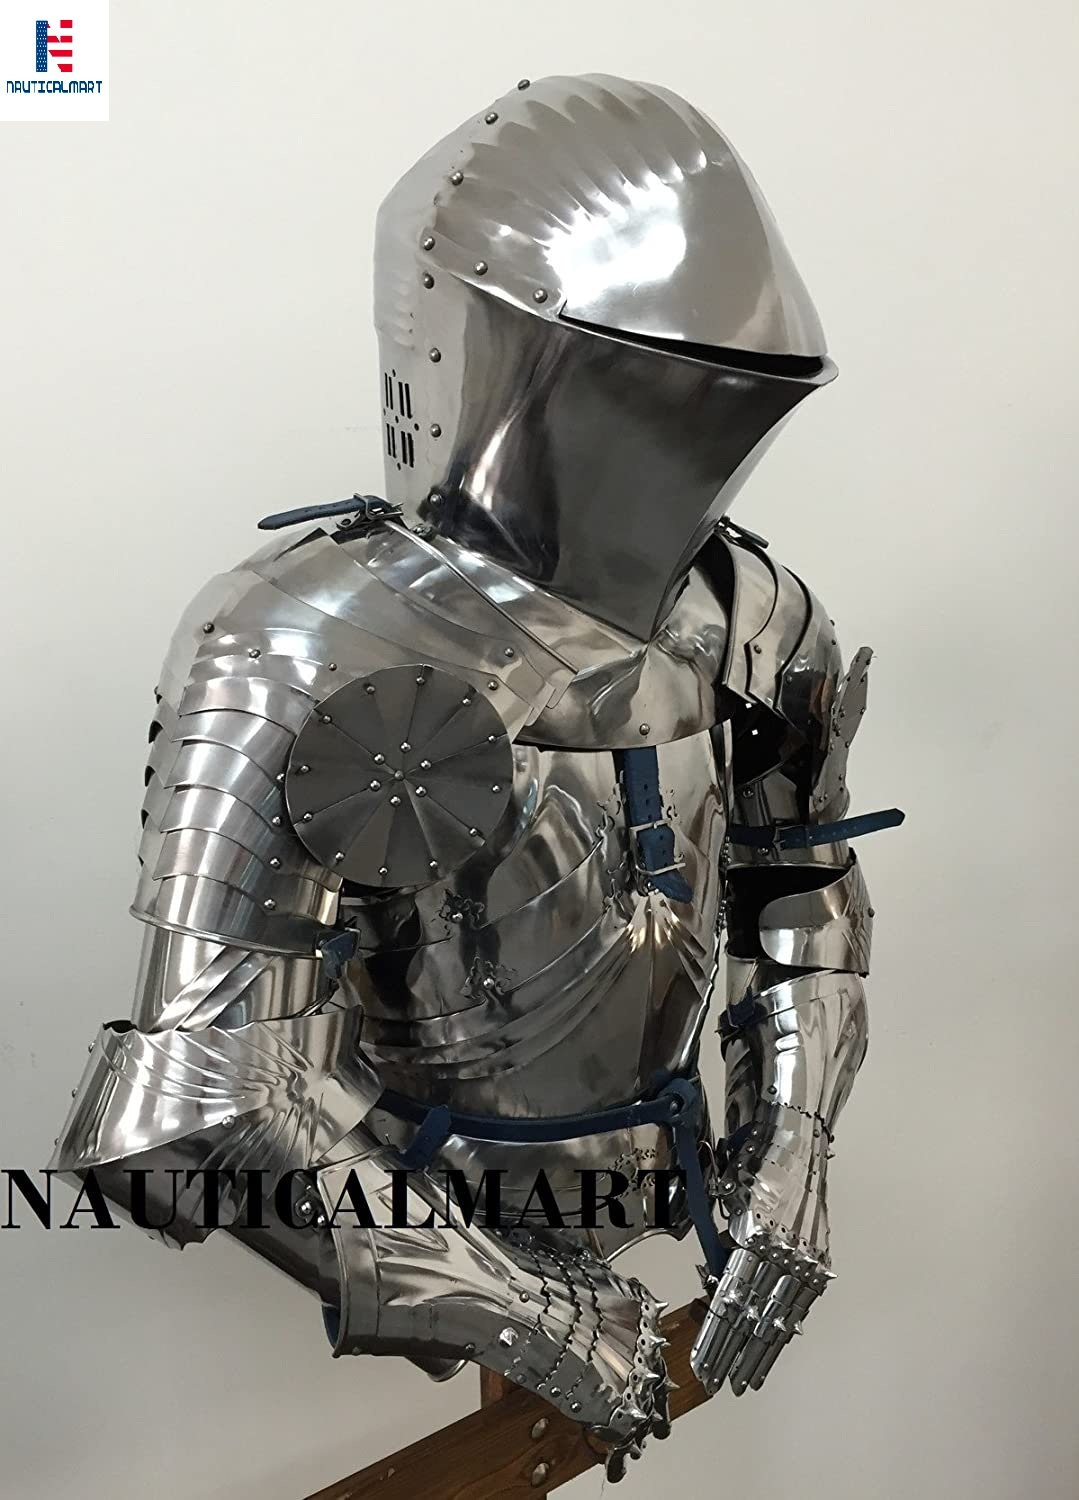 NAUTICALMART Medieval Knight Breastplate Suit of Armour Adult Medieval Costume Helmet